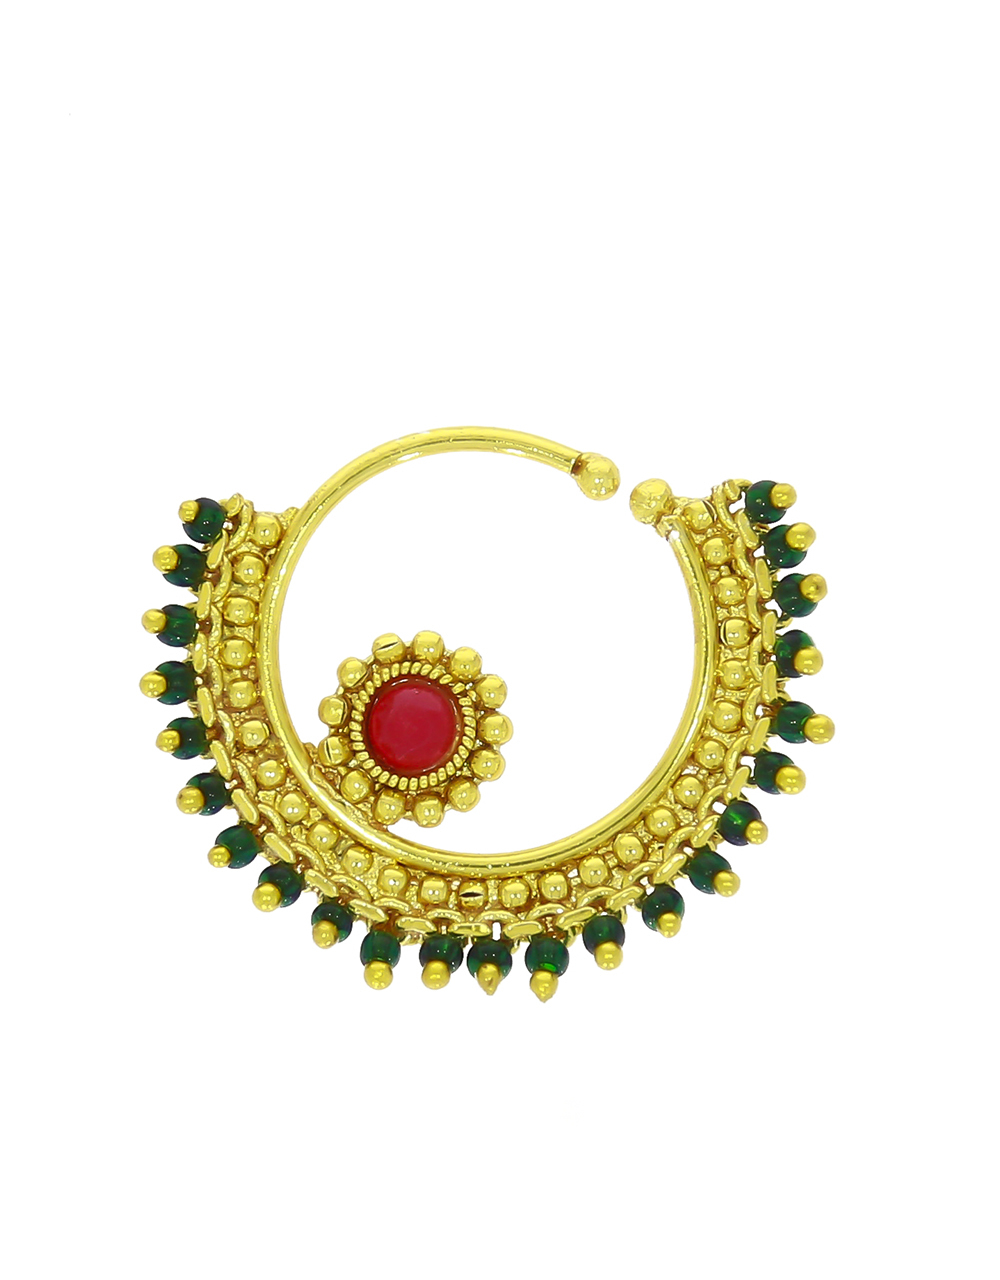 Gold Plated Fancy Nose Ring Styled with Green Beads